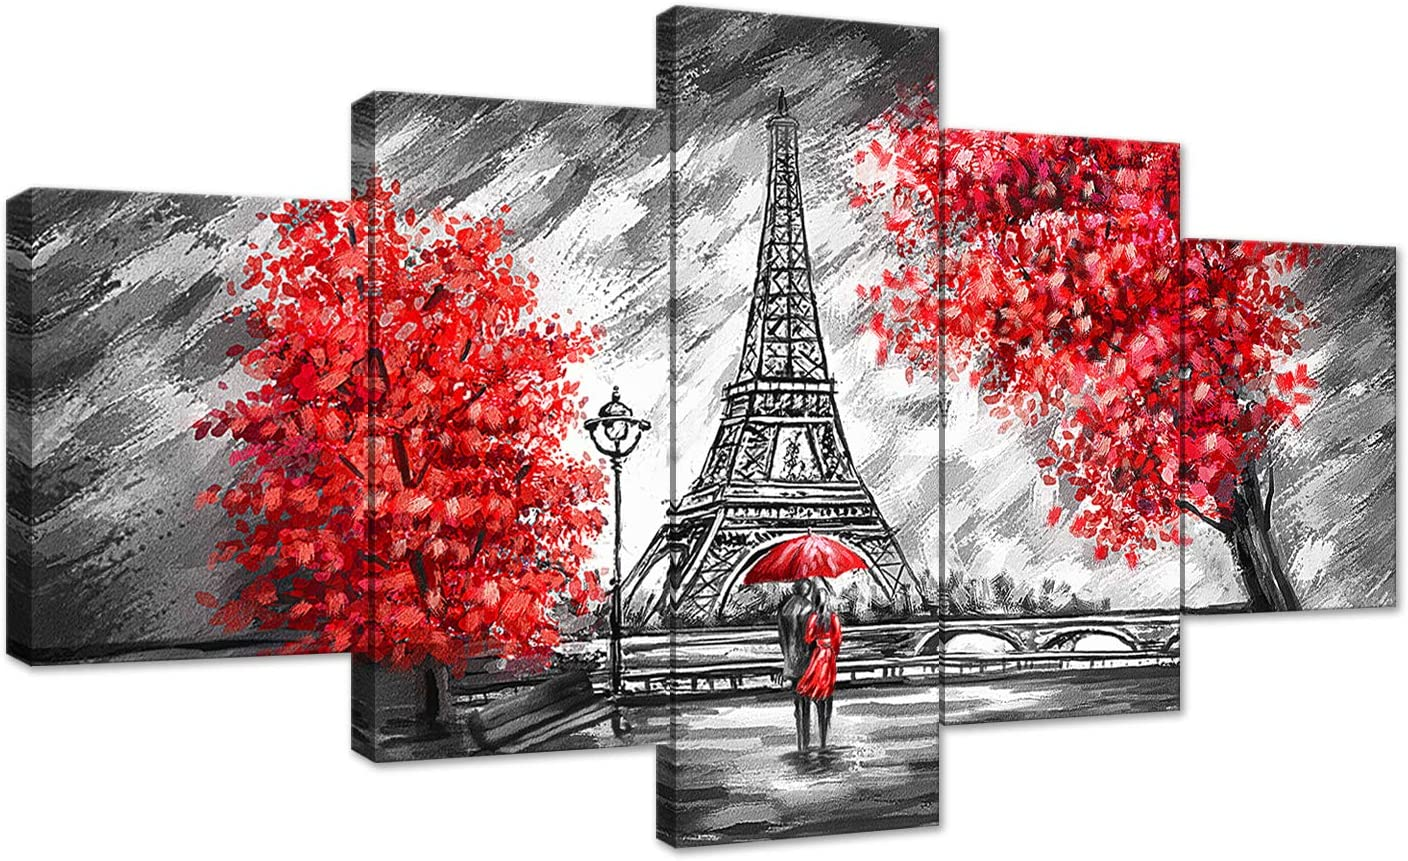 Black and White and Red The Couple Walking in The Rain Eiffel Tower Red Tree Canvas Painting Wall Art Poster Modern Home Decor 5 Panels HD Printed Decor Framed Stretched Ready to Hang